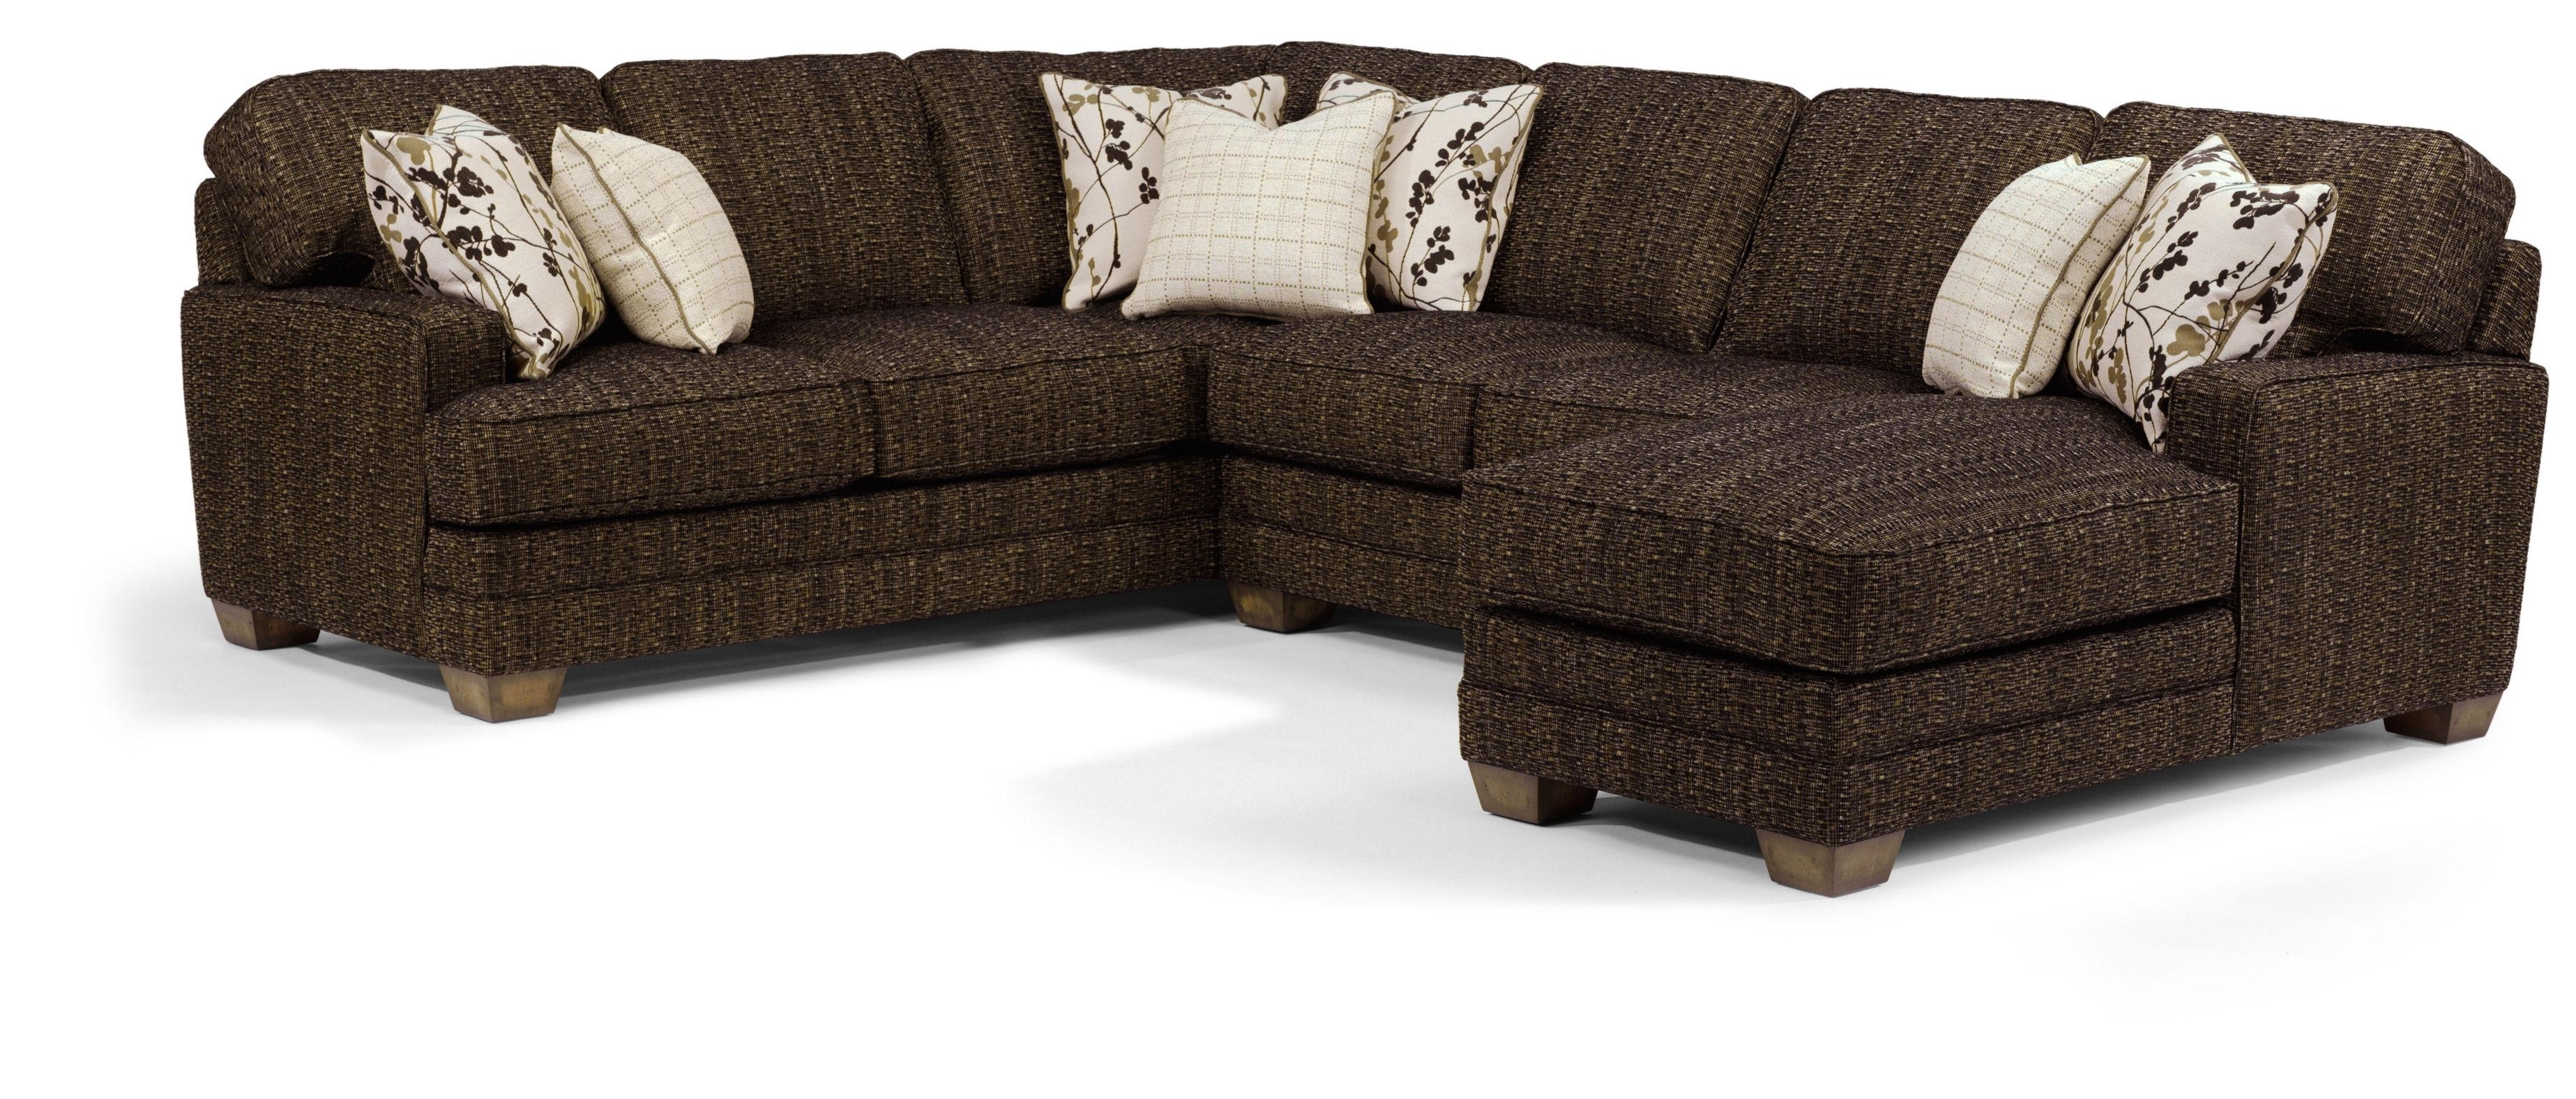 Flexsteel That's My Style <B>Customizable</b> 3 Piece Sectional Sofa within Delano 2 Piece Sectionals With Raf Oversized Chaise (Image 21 of 30)